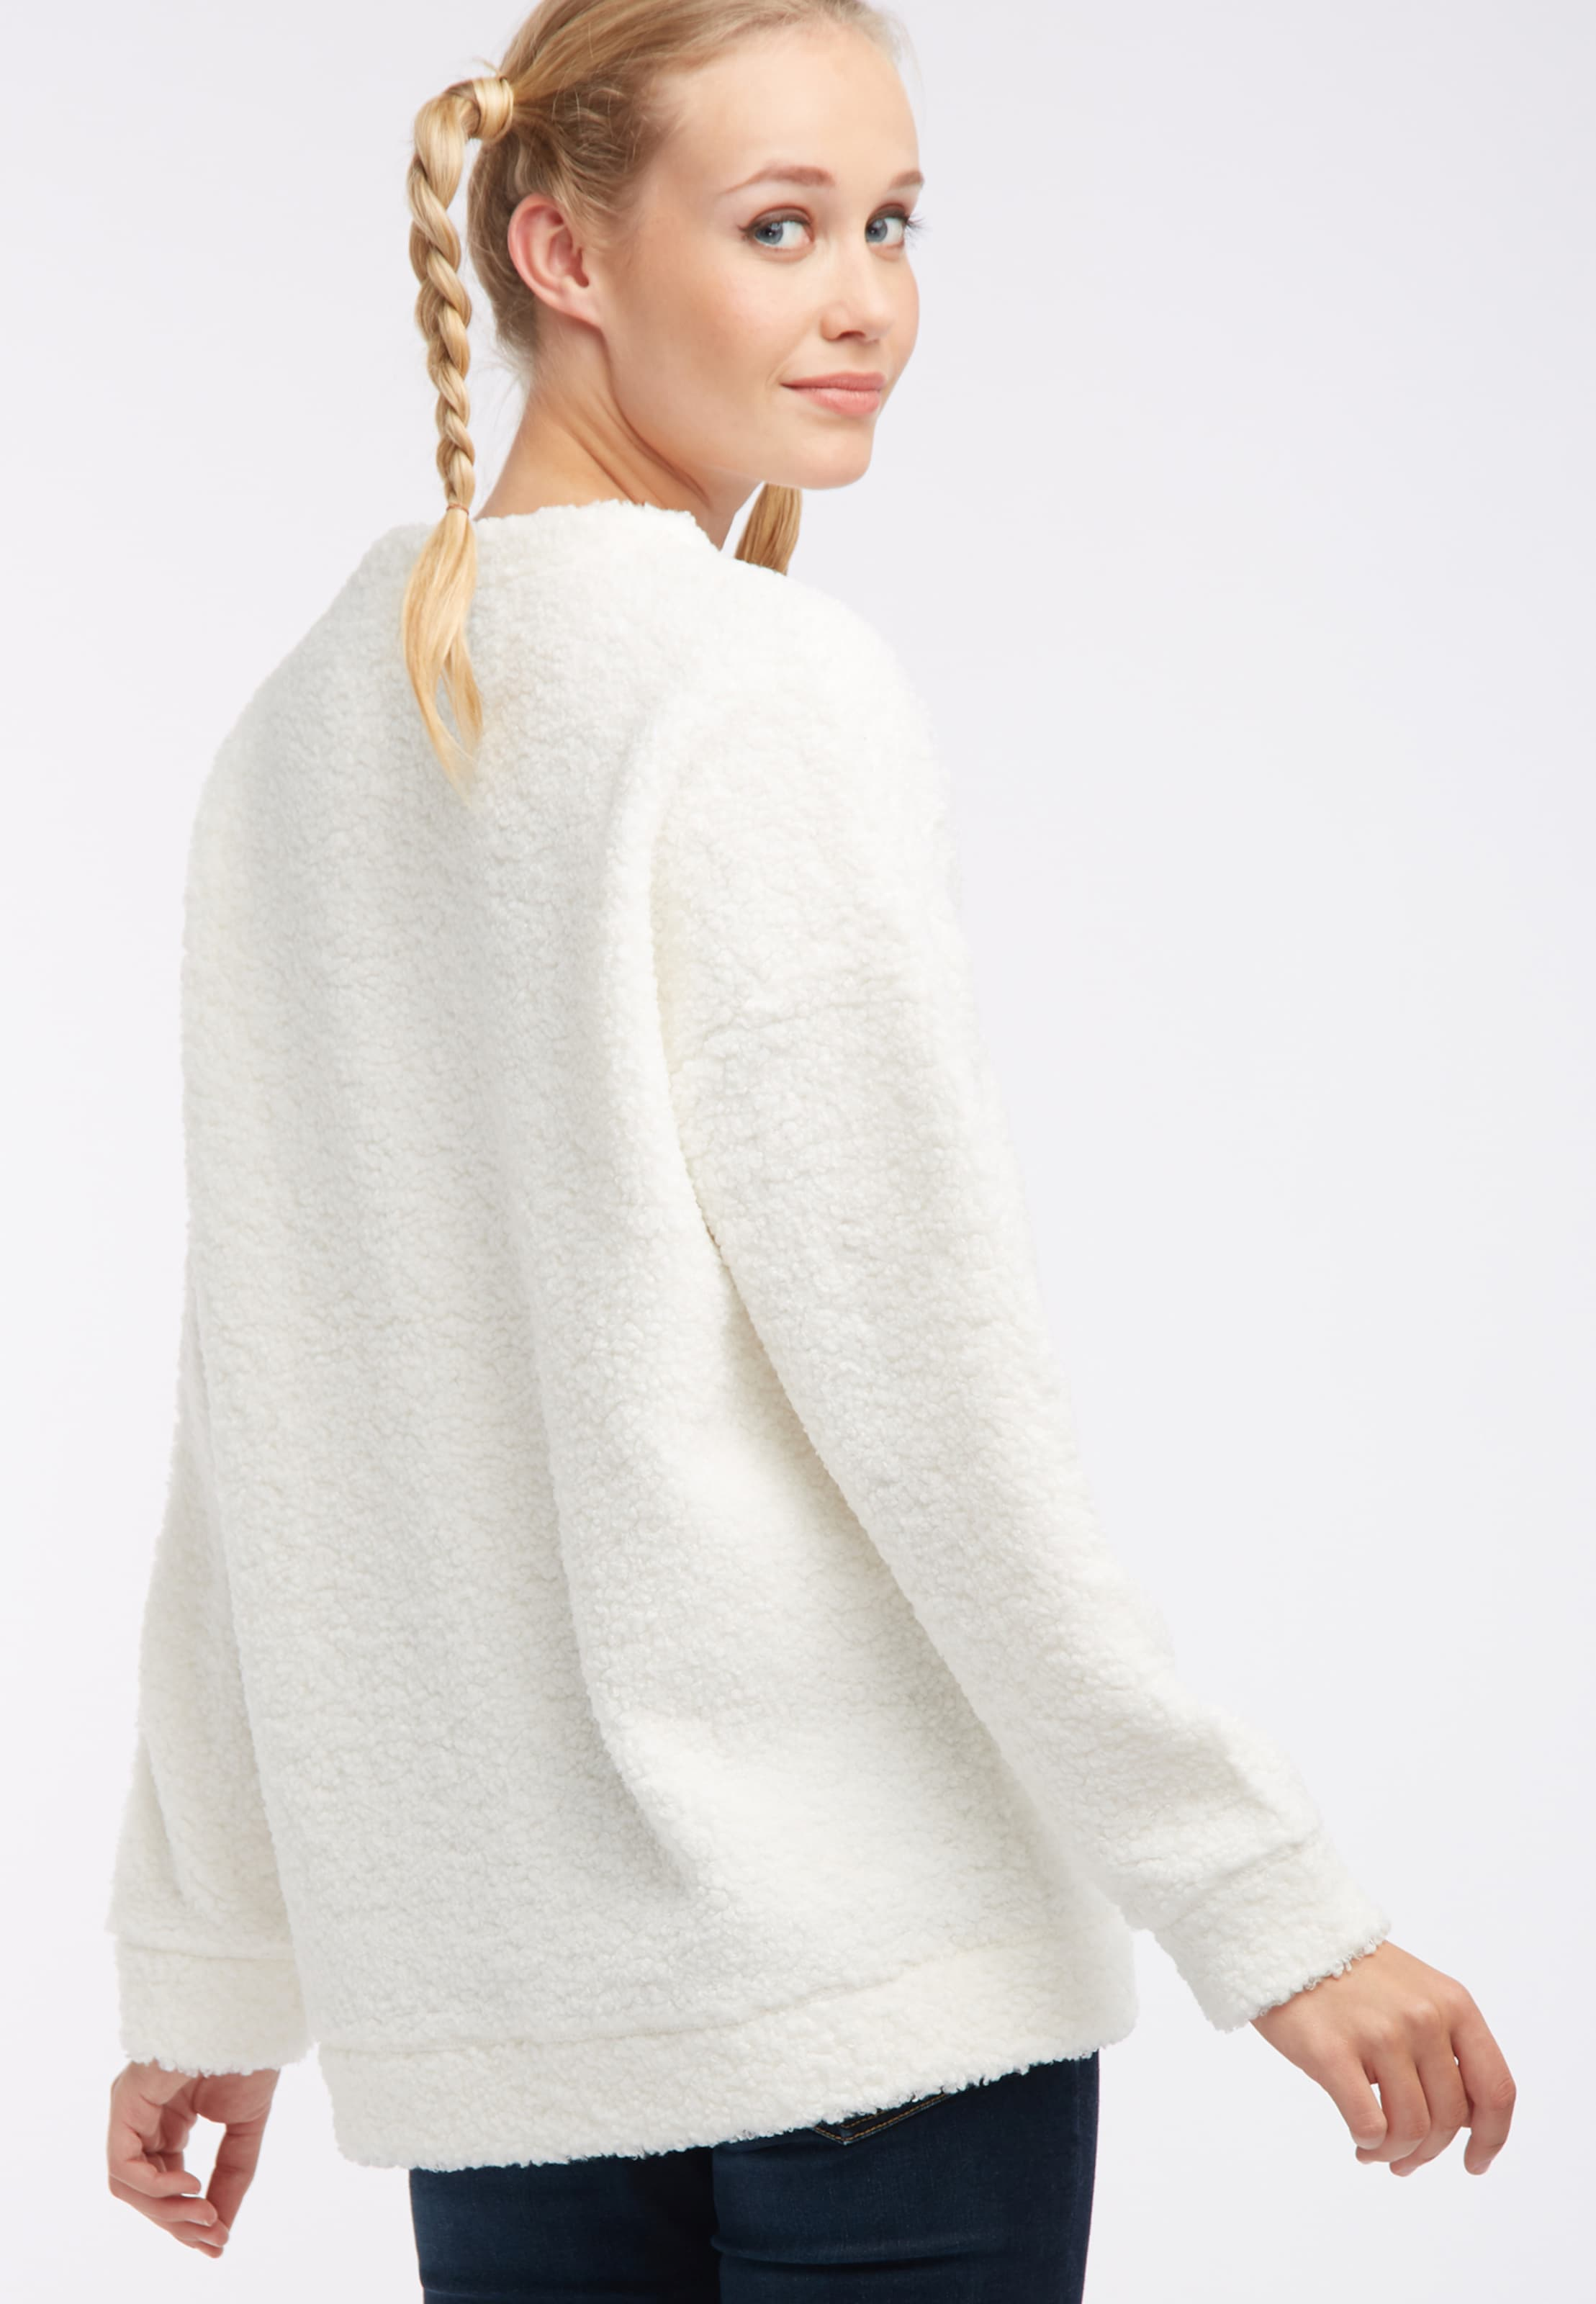 Mymo Pullover In Creme Mymo Creme Pullover Mymo Creme Pullover In In Mymo kOuXZPiT